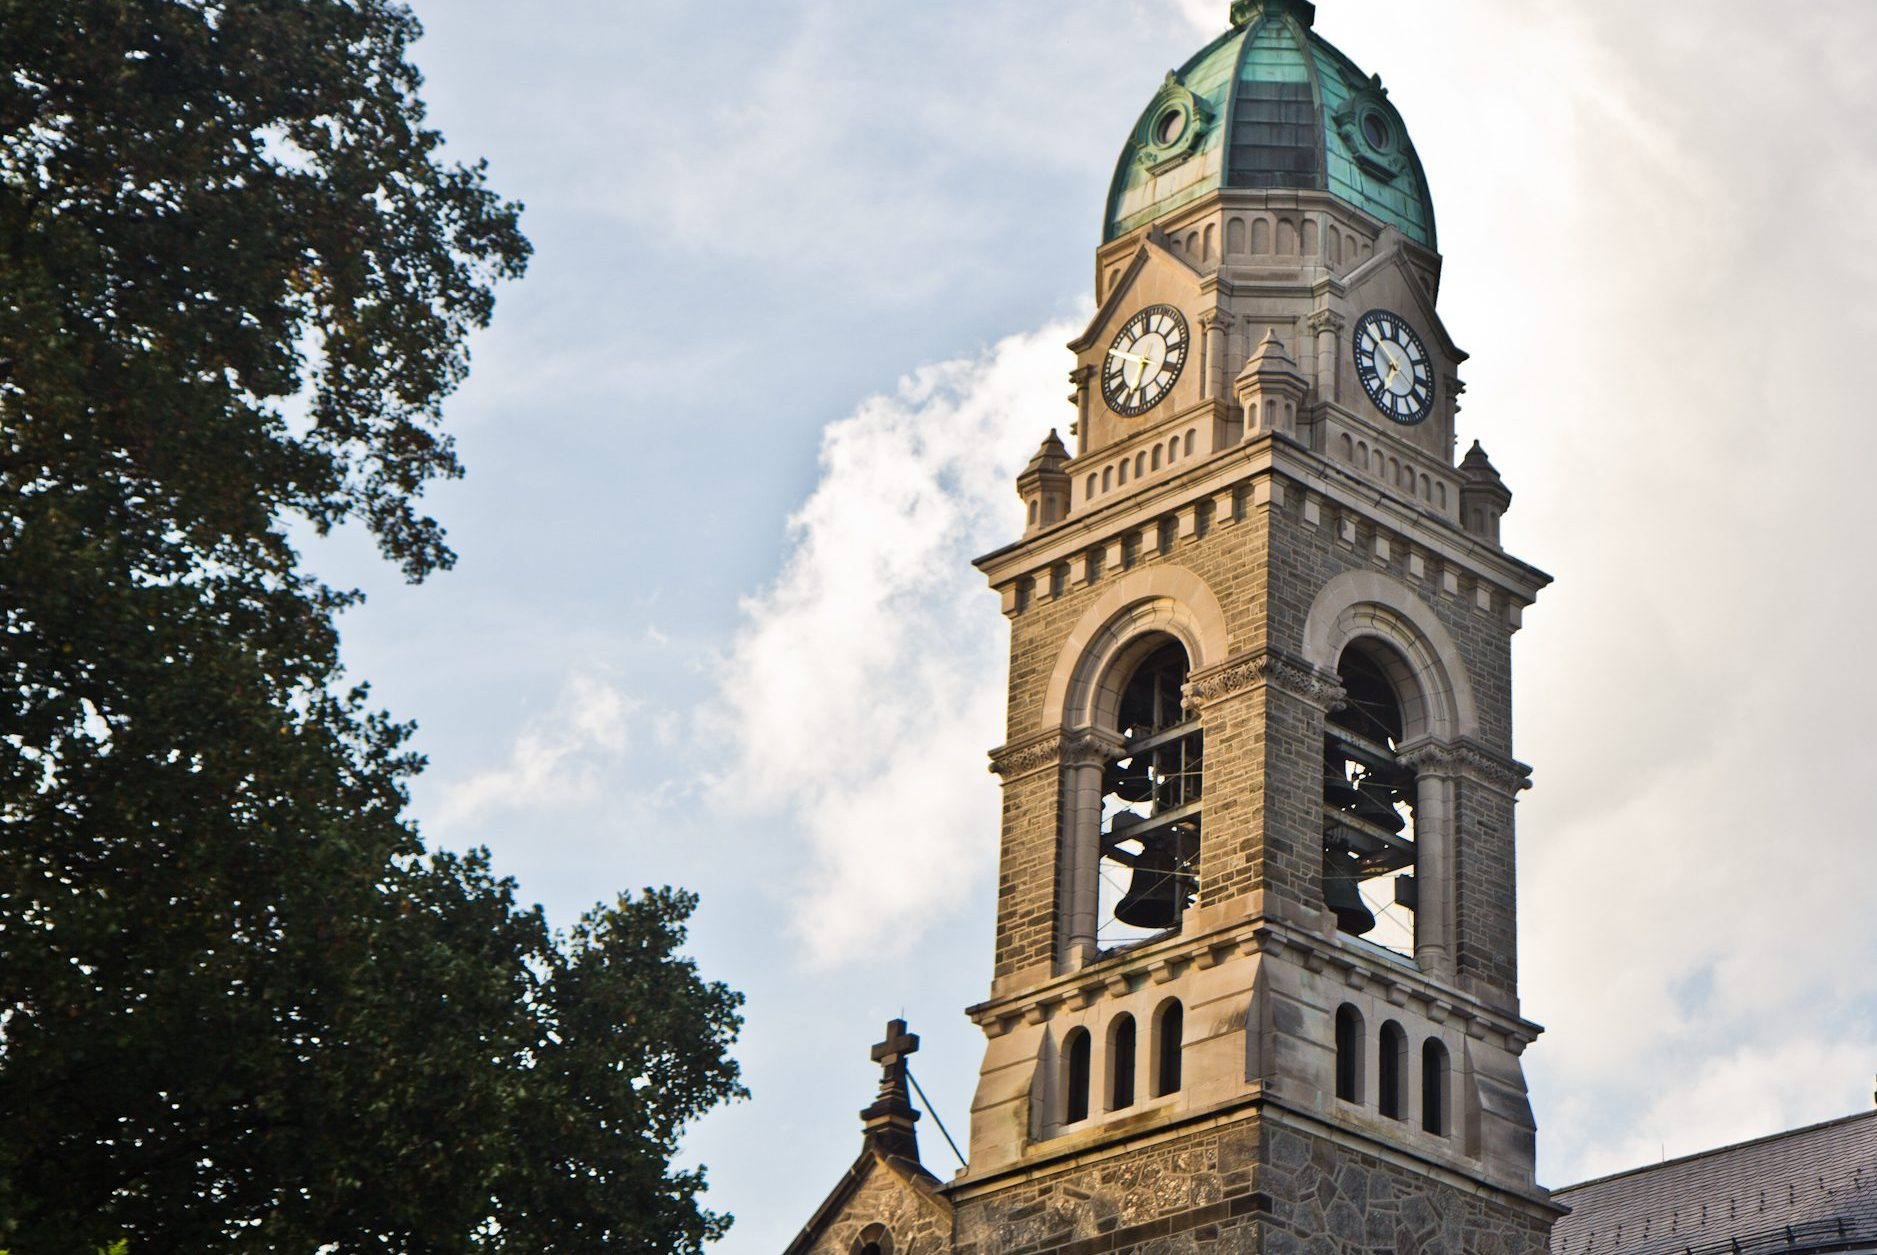 Efforts to 'unhide' Philly's historic church bell carillons - WHYY